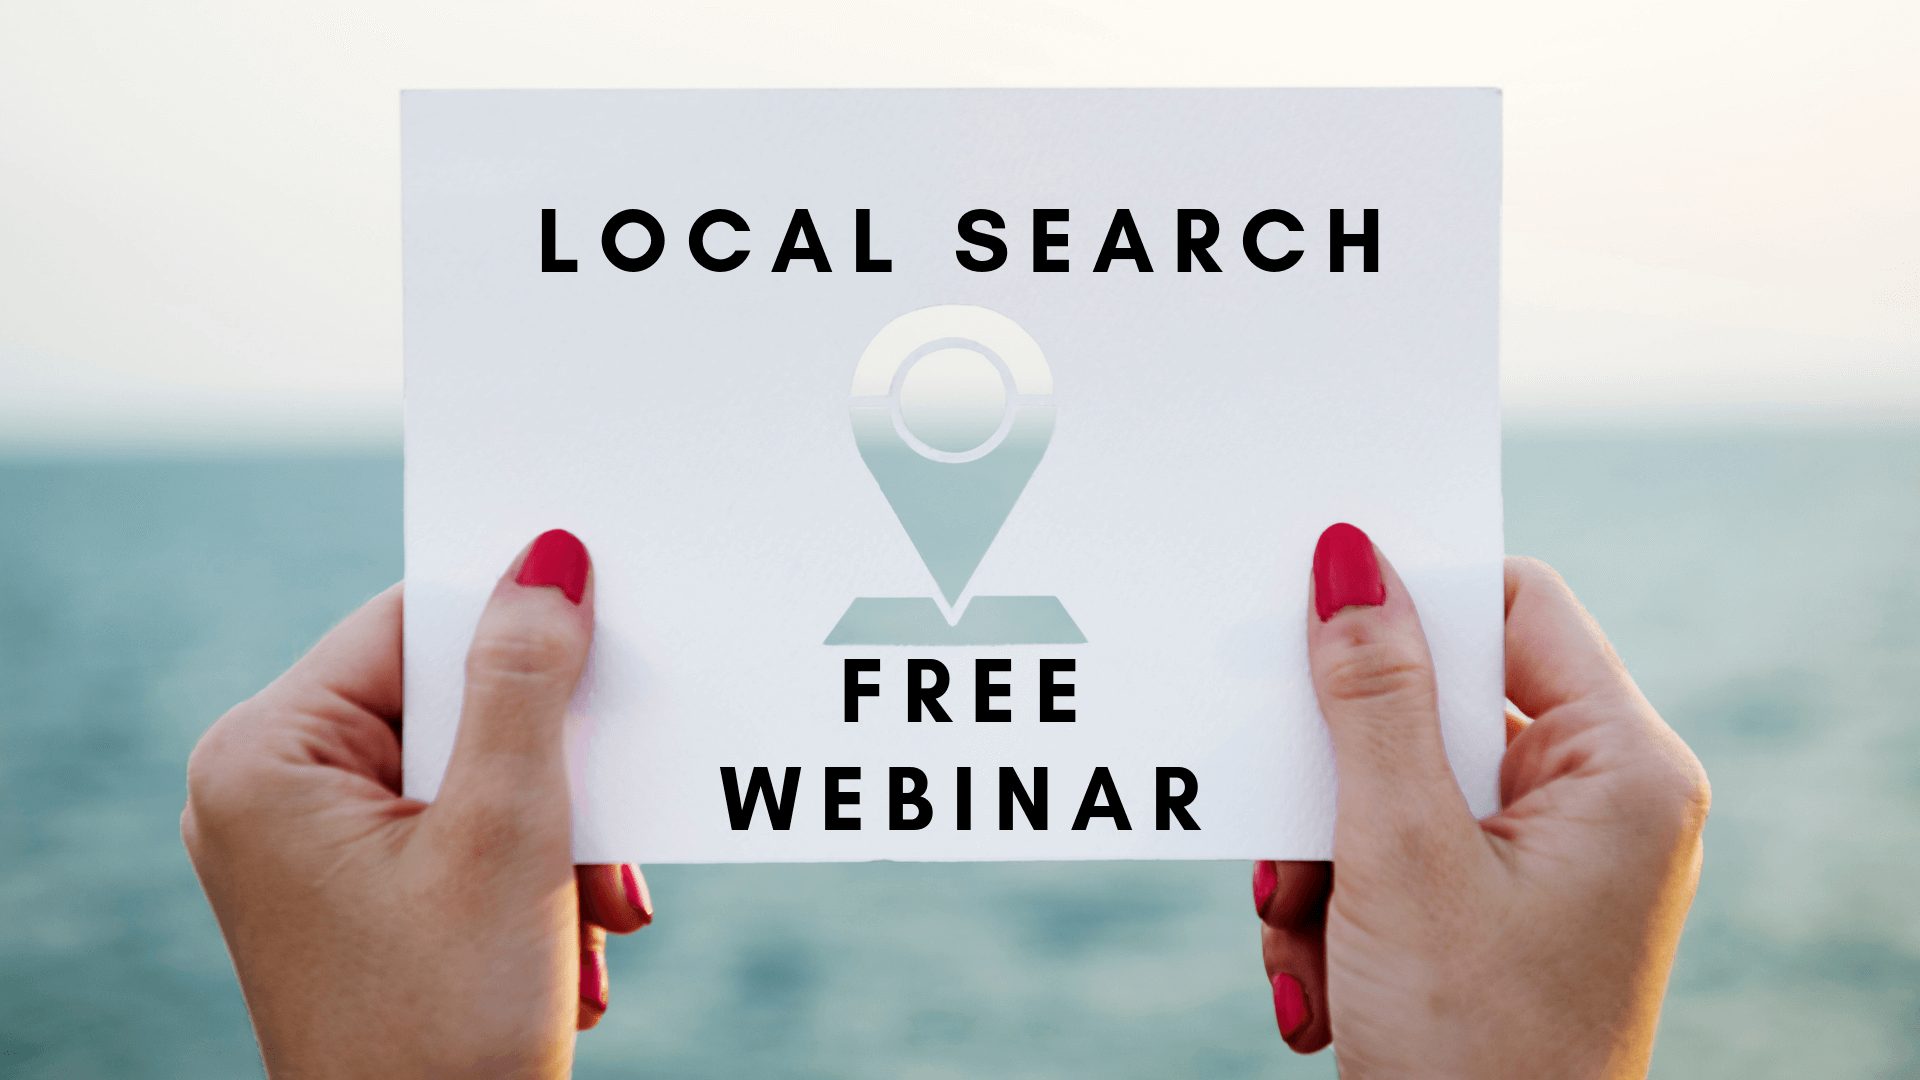 FREE Webinar on Harnessing the Power of Local Search